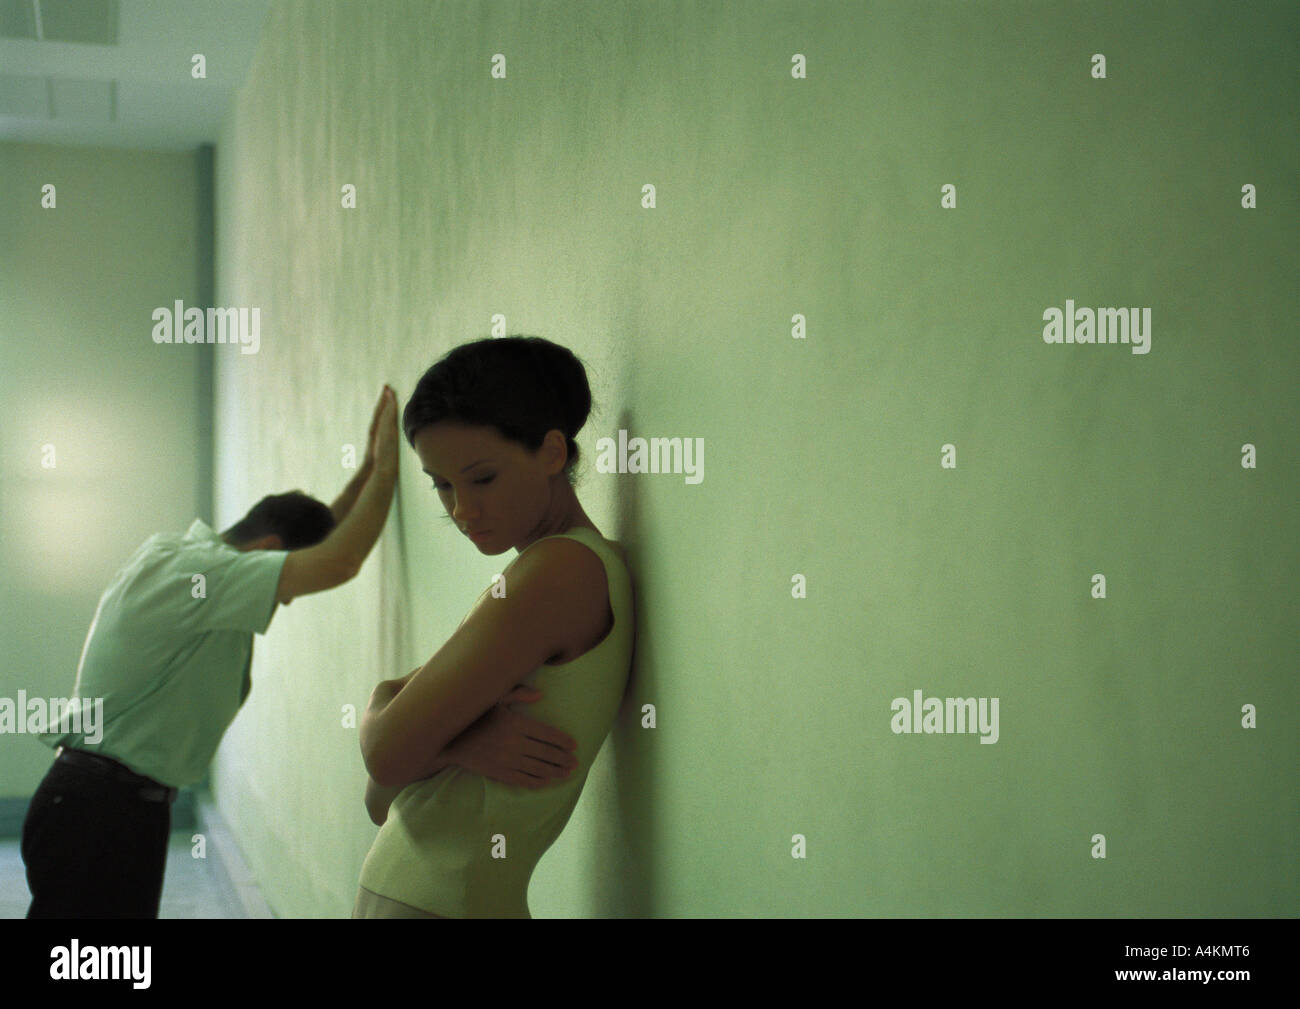 Woman with back against wall, arms folded, man in background leaning despondently against wall - Stock Image